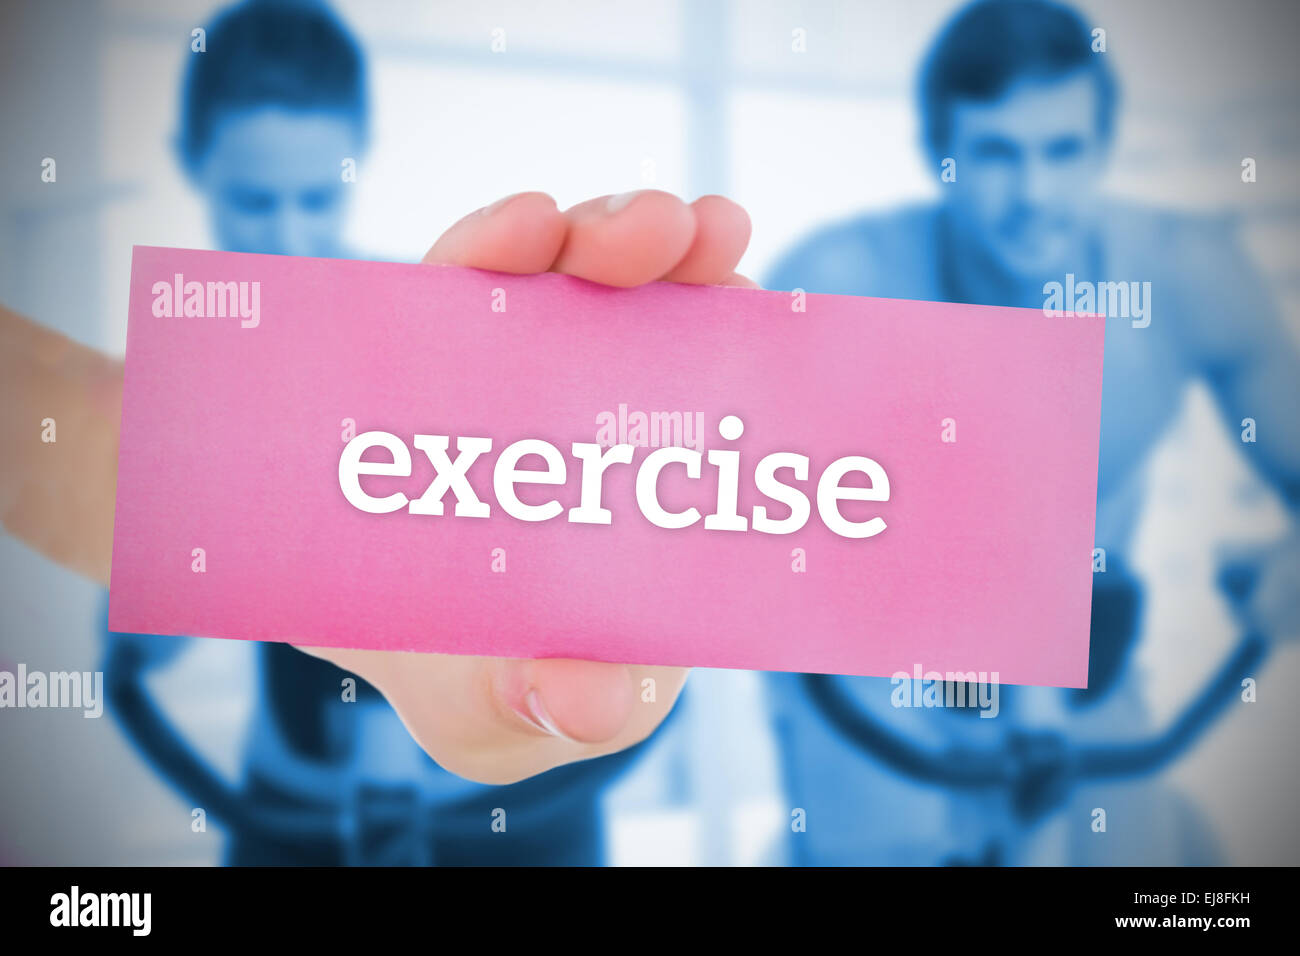 Woman holding pink card saying exercise - Stock Image